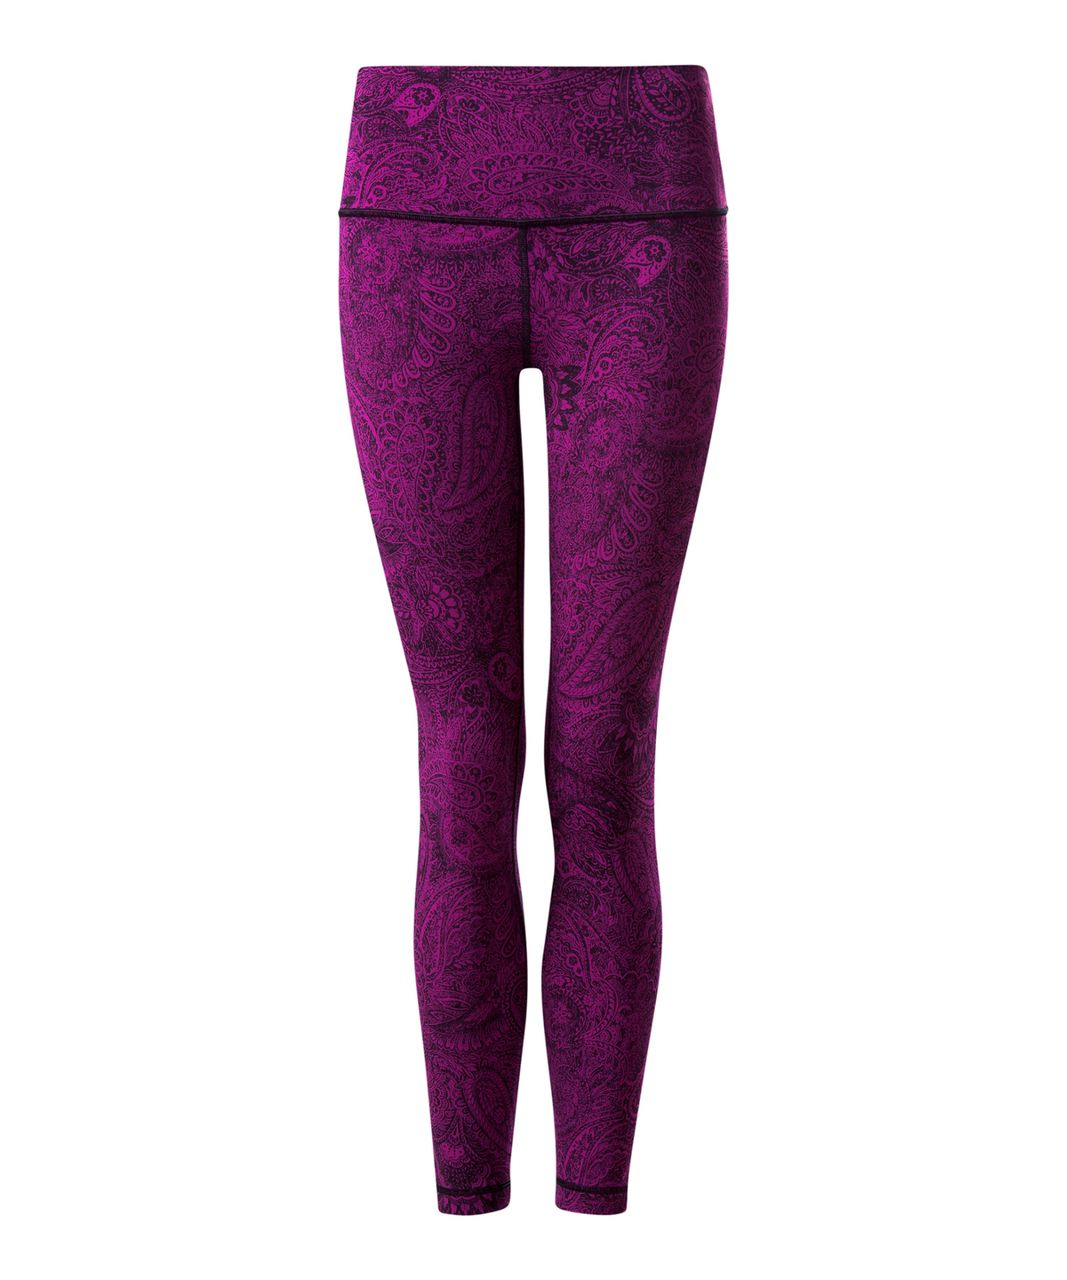 Lululemon High Times Pant - Antique Paisley Deep Fuschia Black